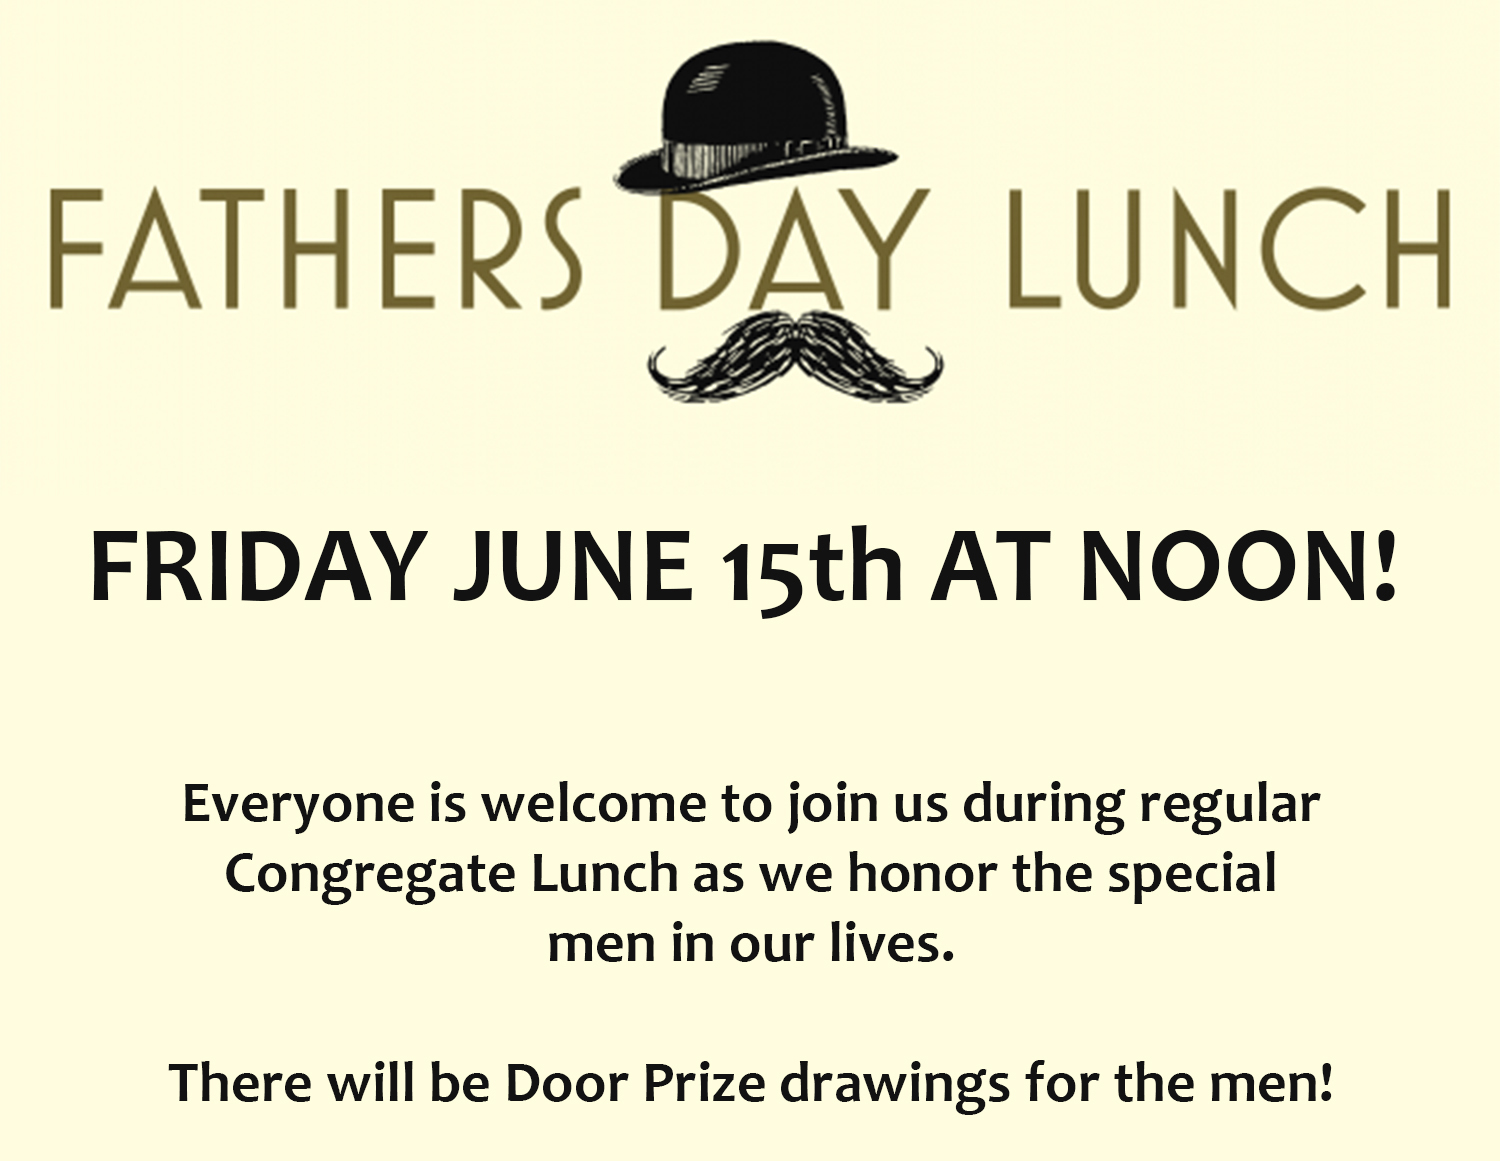 Fathers Day Lunch 2018 website calendar